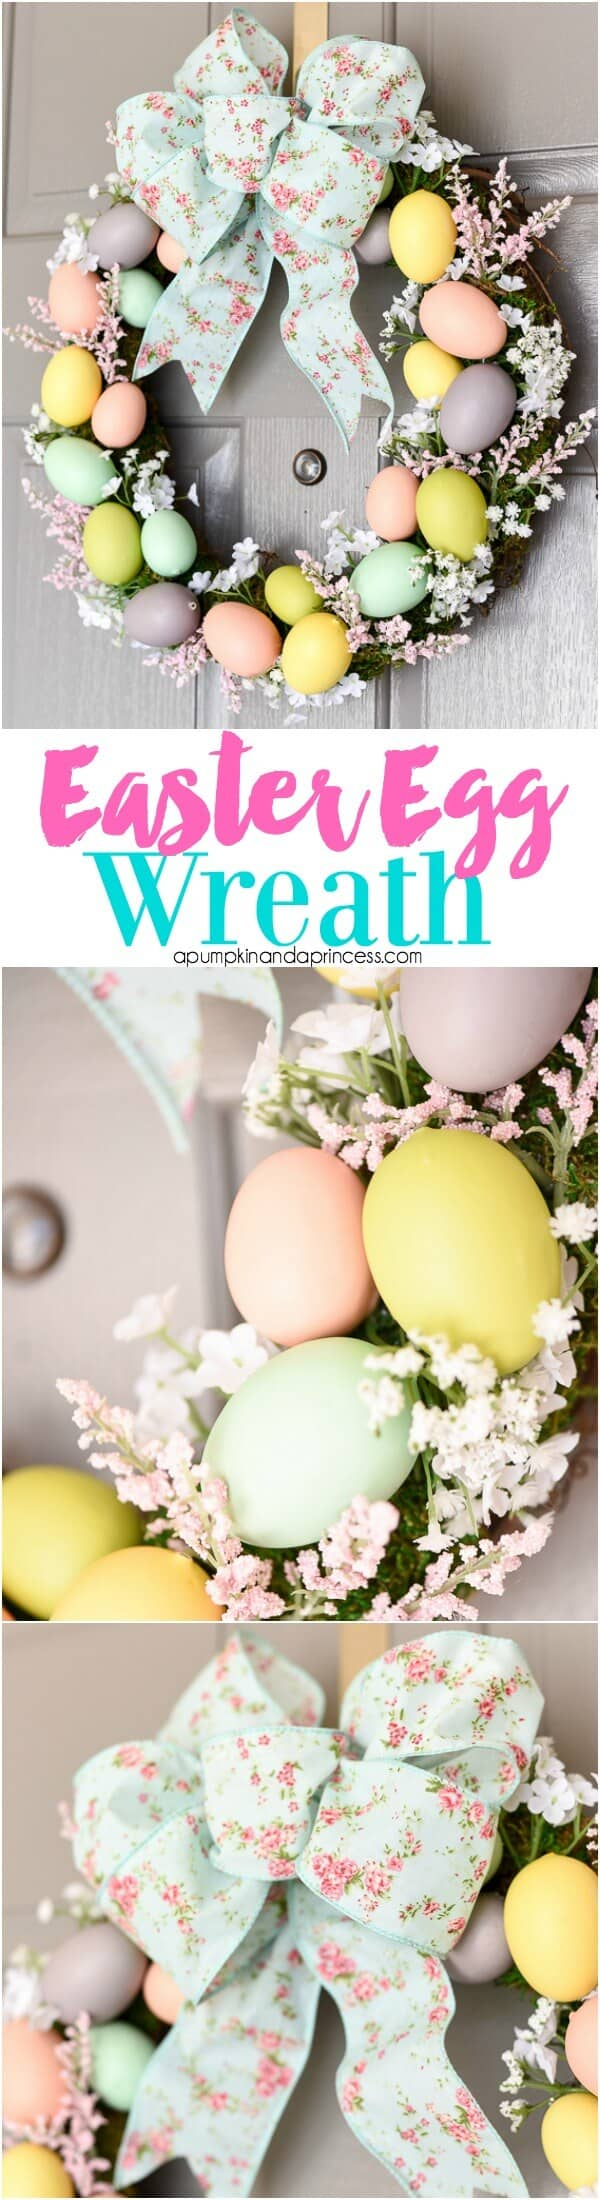 Colorful Easter Egg Decorations Wreath